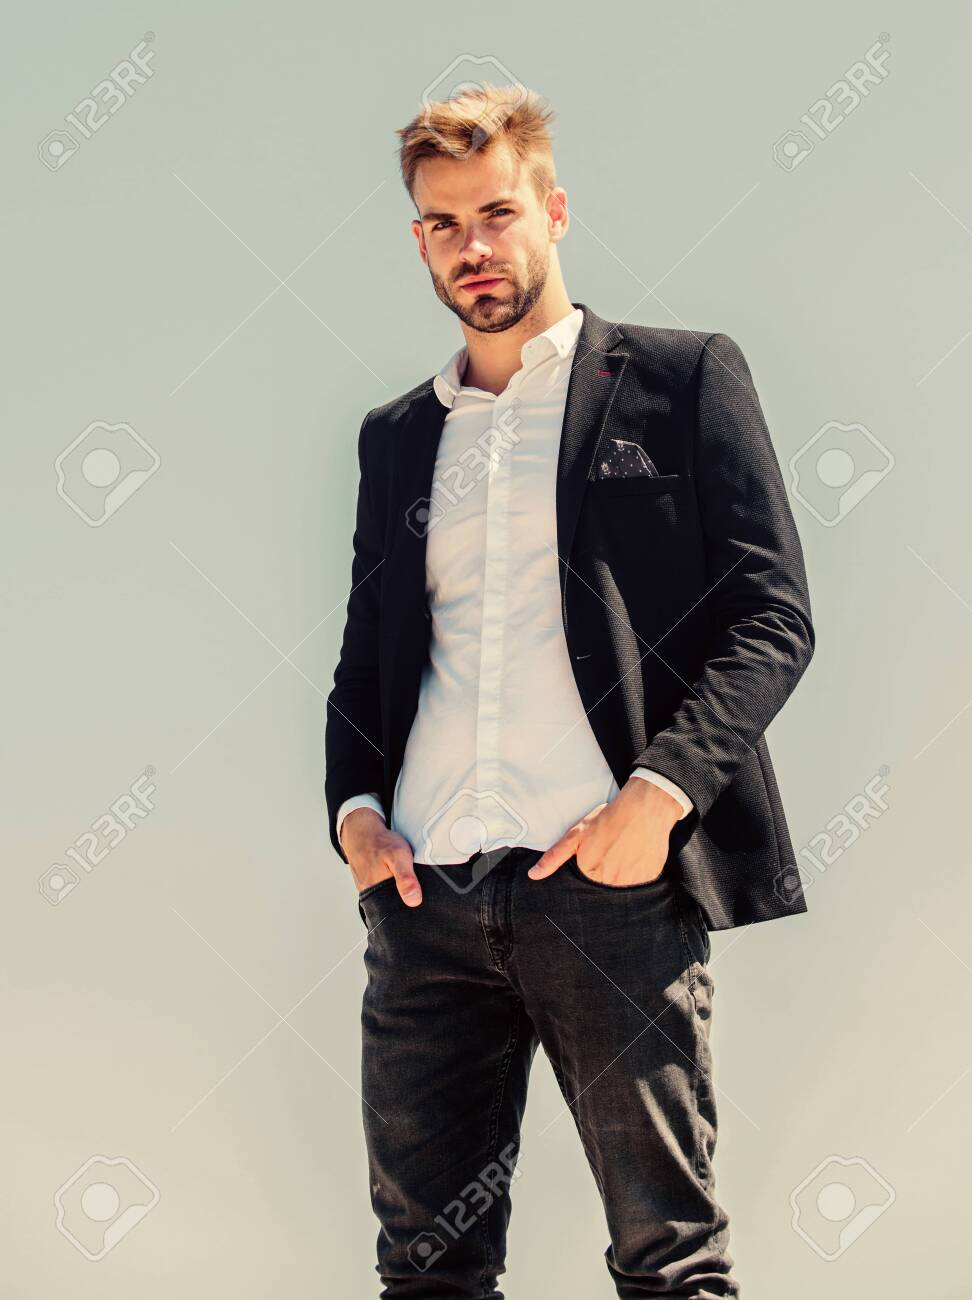 Bearded guy business style. macho man. male grooming. formal male fashion. modern lifestyle. confident businessman. Handsome man fashion model. success concept. Sky background. agile business - 150331141